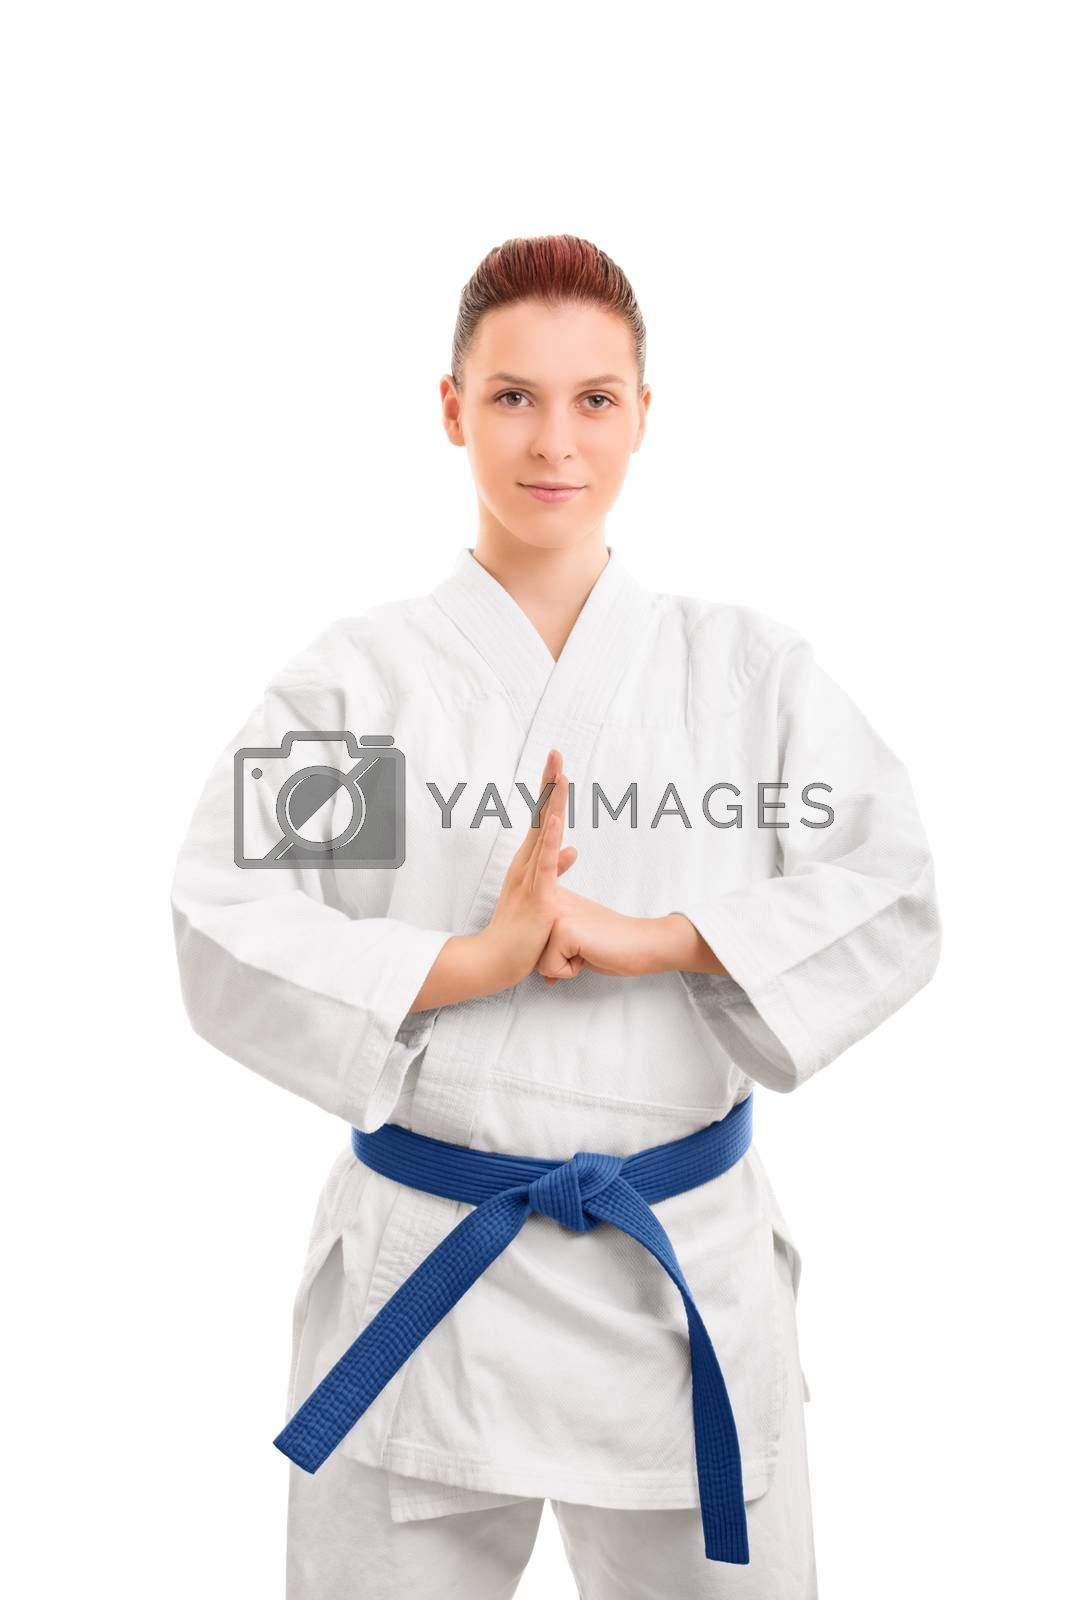 Portrait of a beautiful female martial arts fighter in a white kimono with blue belt performing a hand salute, isolated on white background. Girl in a kimono performing a hand salute.